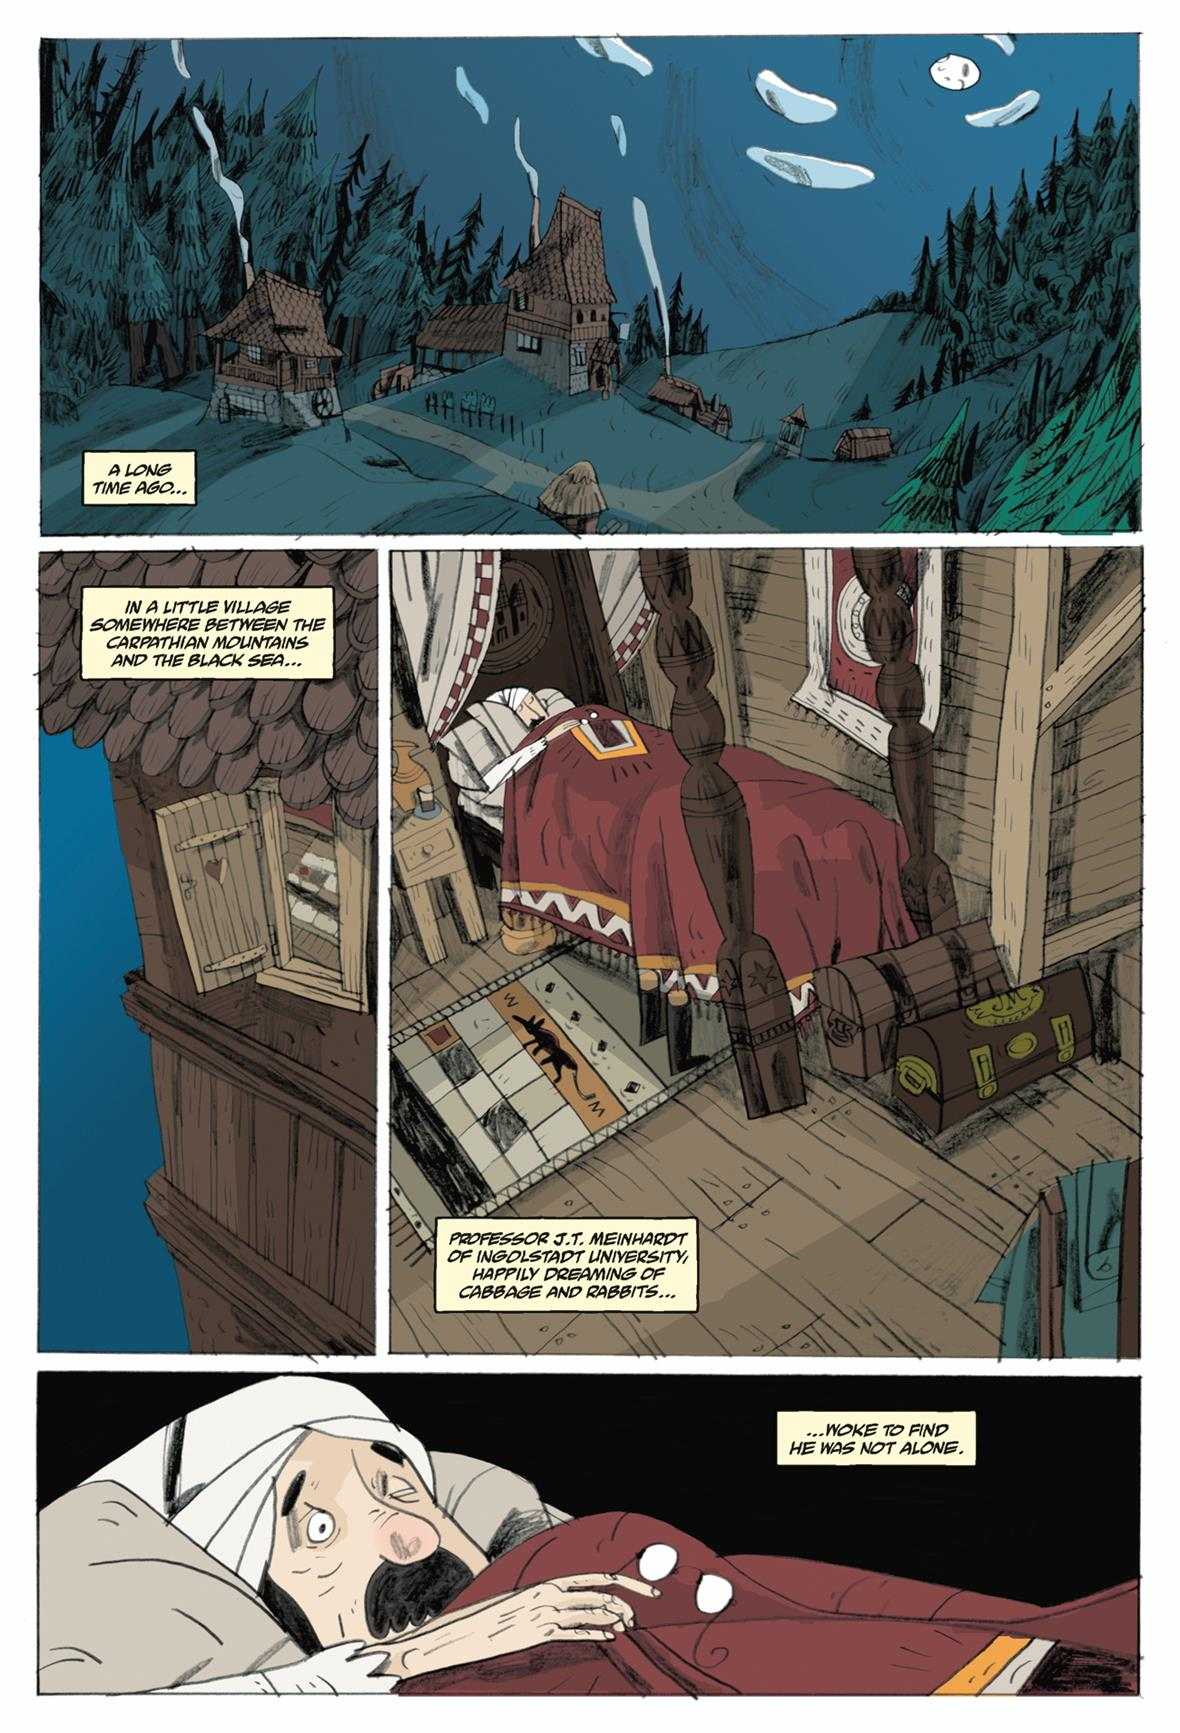 mr higgins comes home – an excerpt from an original graphic novel